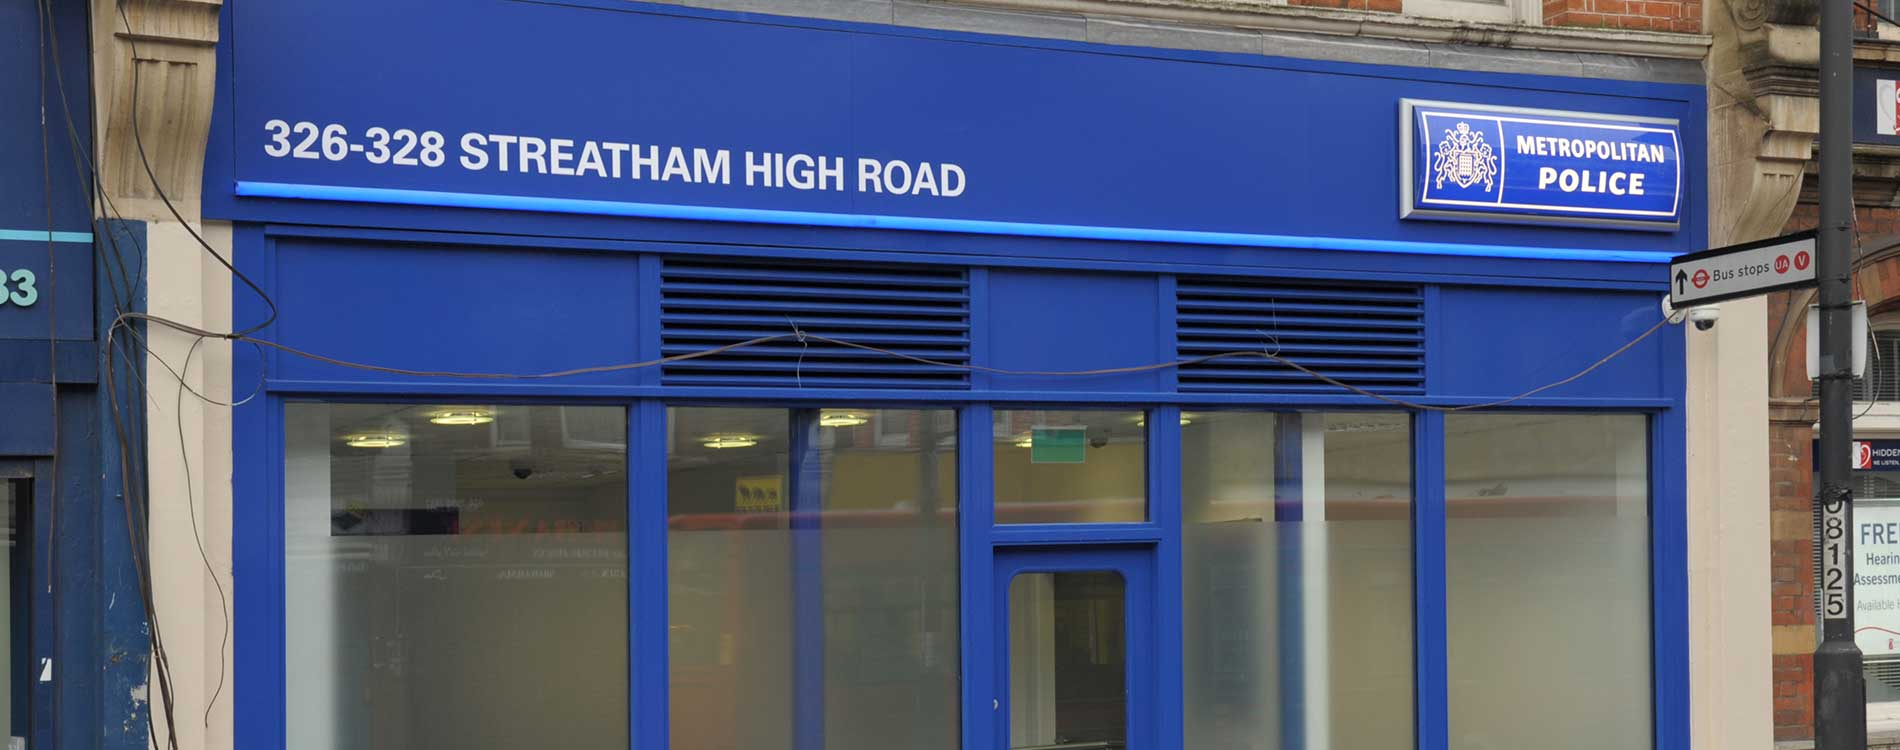 Police station in streatham high road